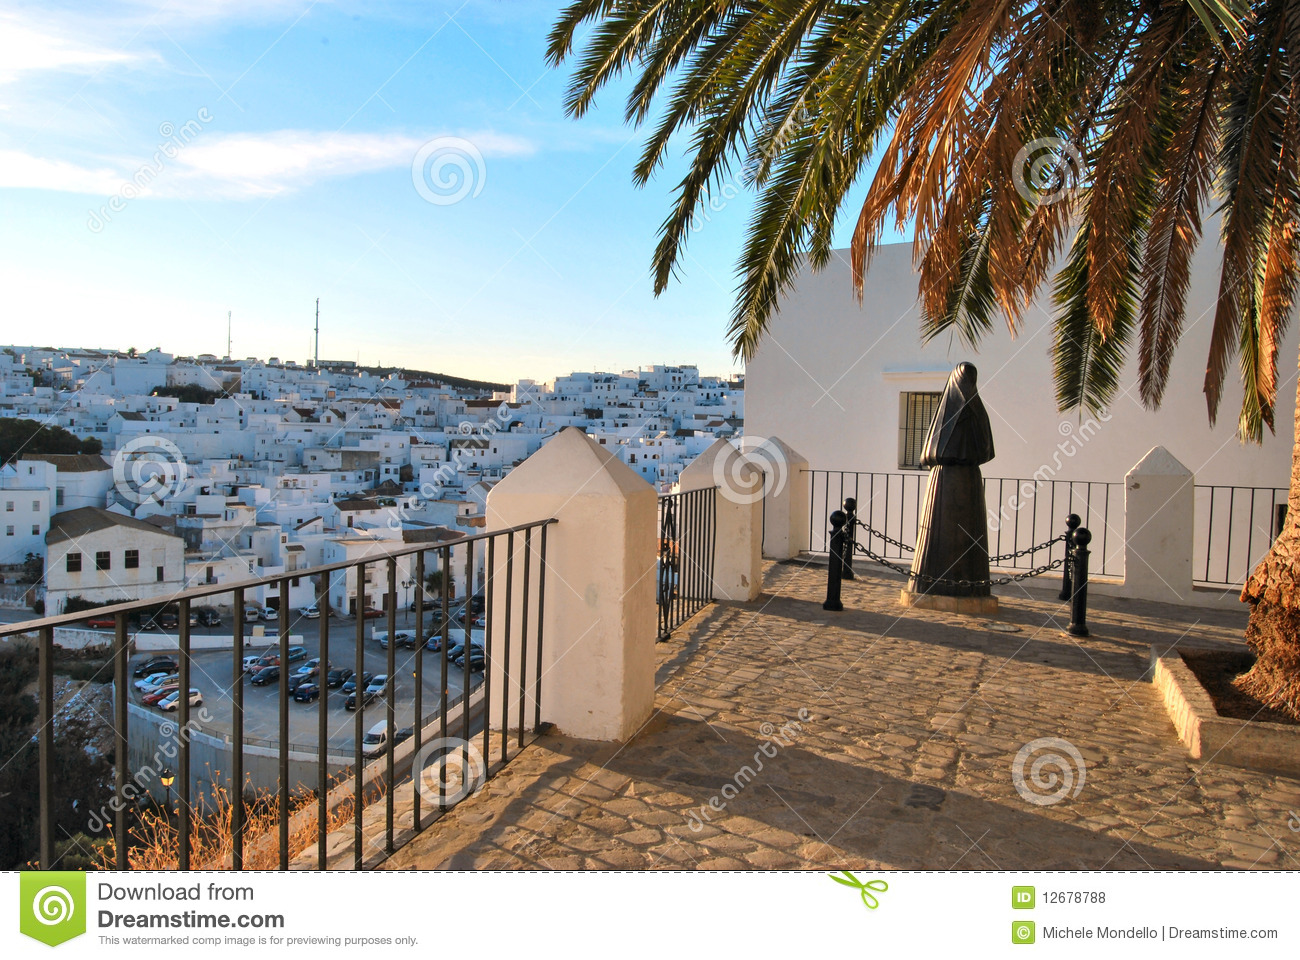 Vejer de la Frontera Spain  city photos : Vejer De La Frontera, Spain Royalty Free Stock Photos Image ...